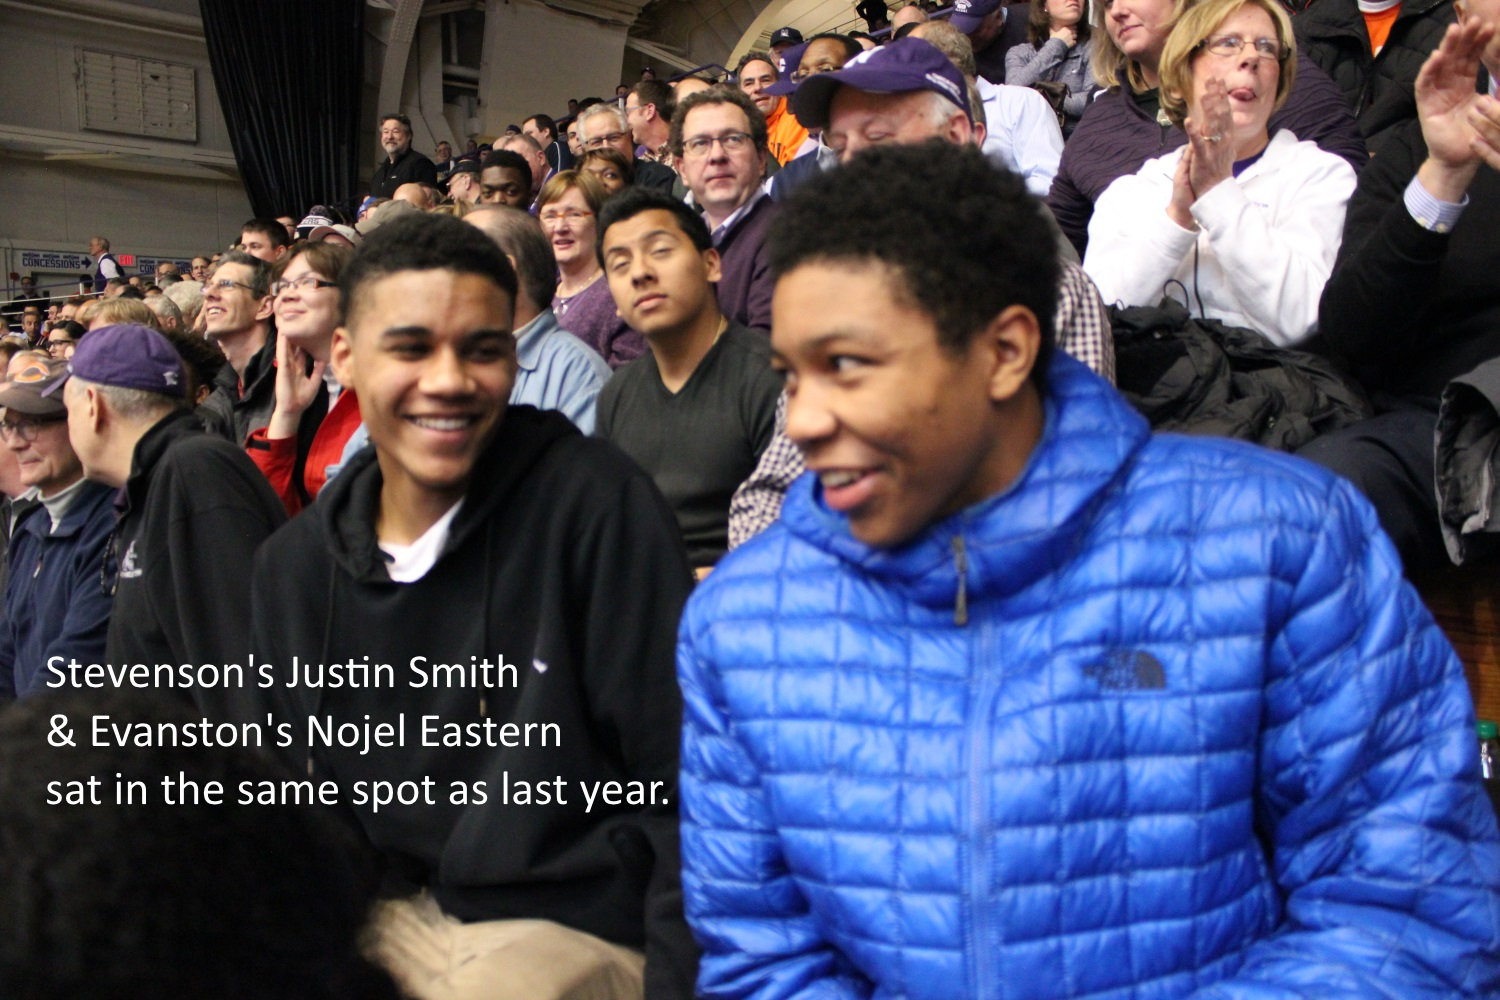 Justin Smith and Nojel Eastern